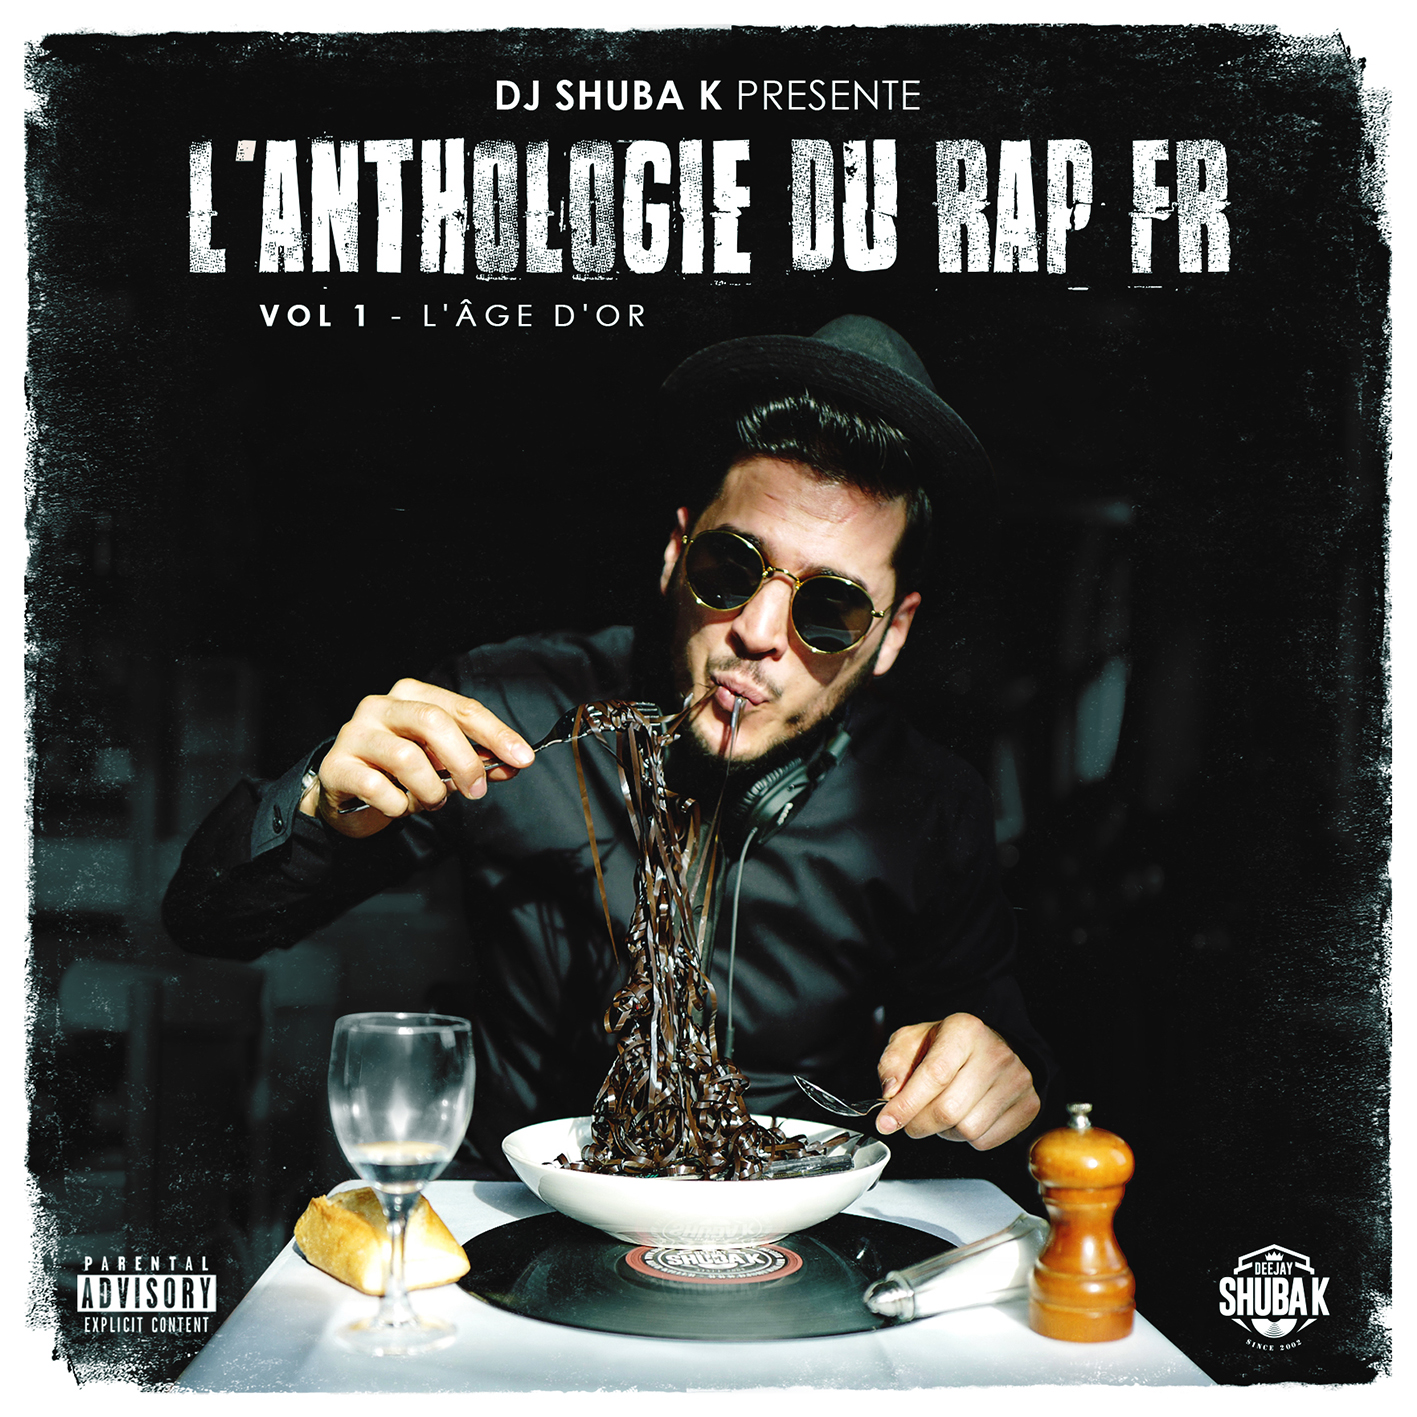 Anthologie_du_rap_francais_Vol_1_L_age_d_or_Dj-SHUBA_K-Mixtape_podcast_2018